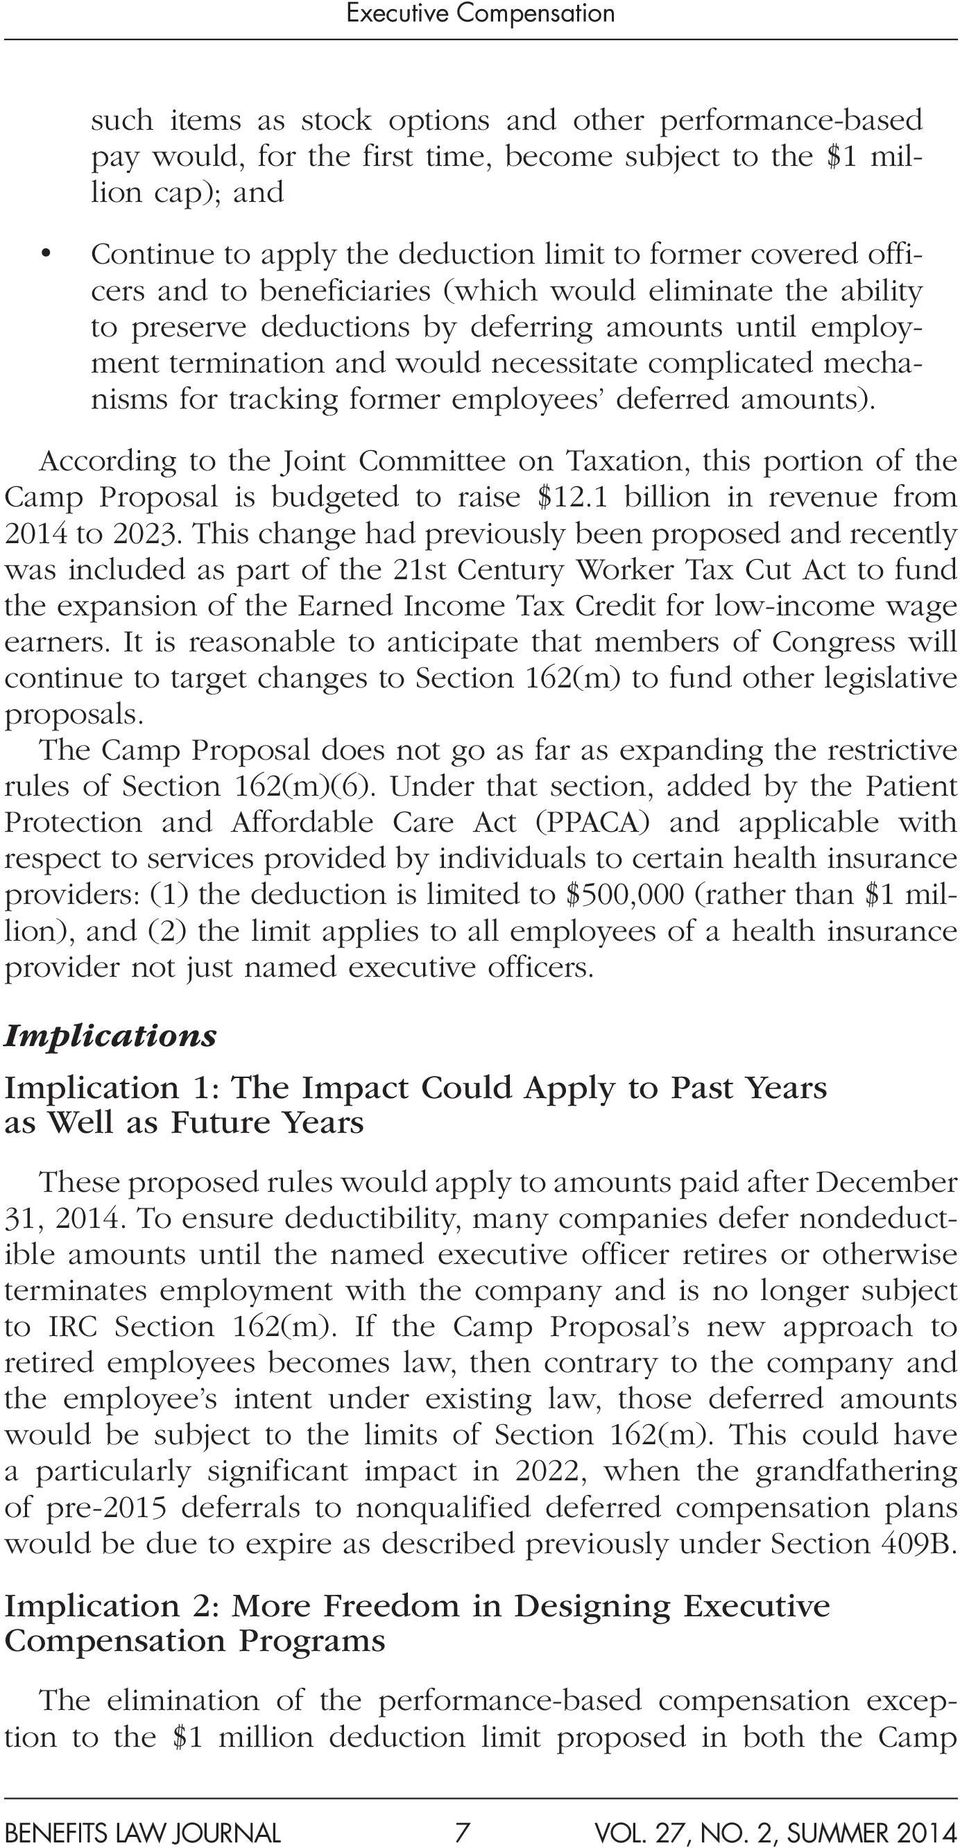 deferred amounts). According to the Joint Committee on Taxation, this portion of the Camp Proposal is budgeted to raise $12.1 billion in revenue from 2014 to 2023.